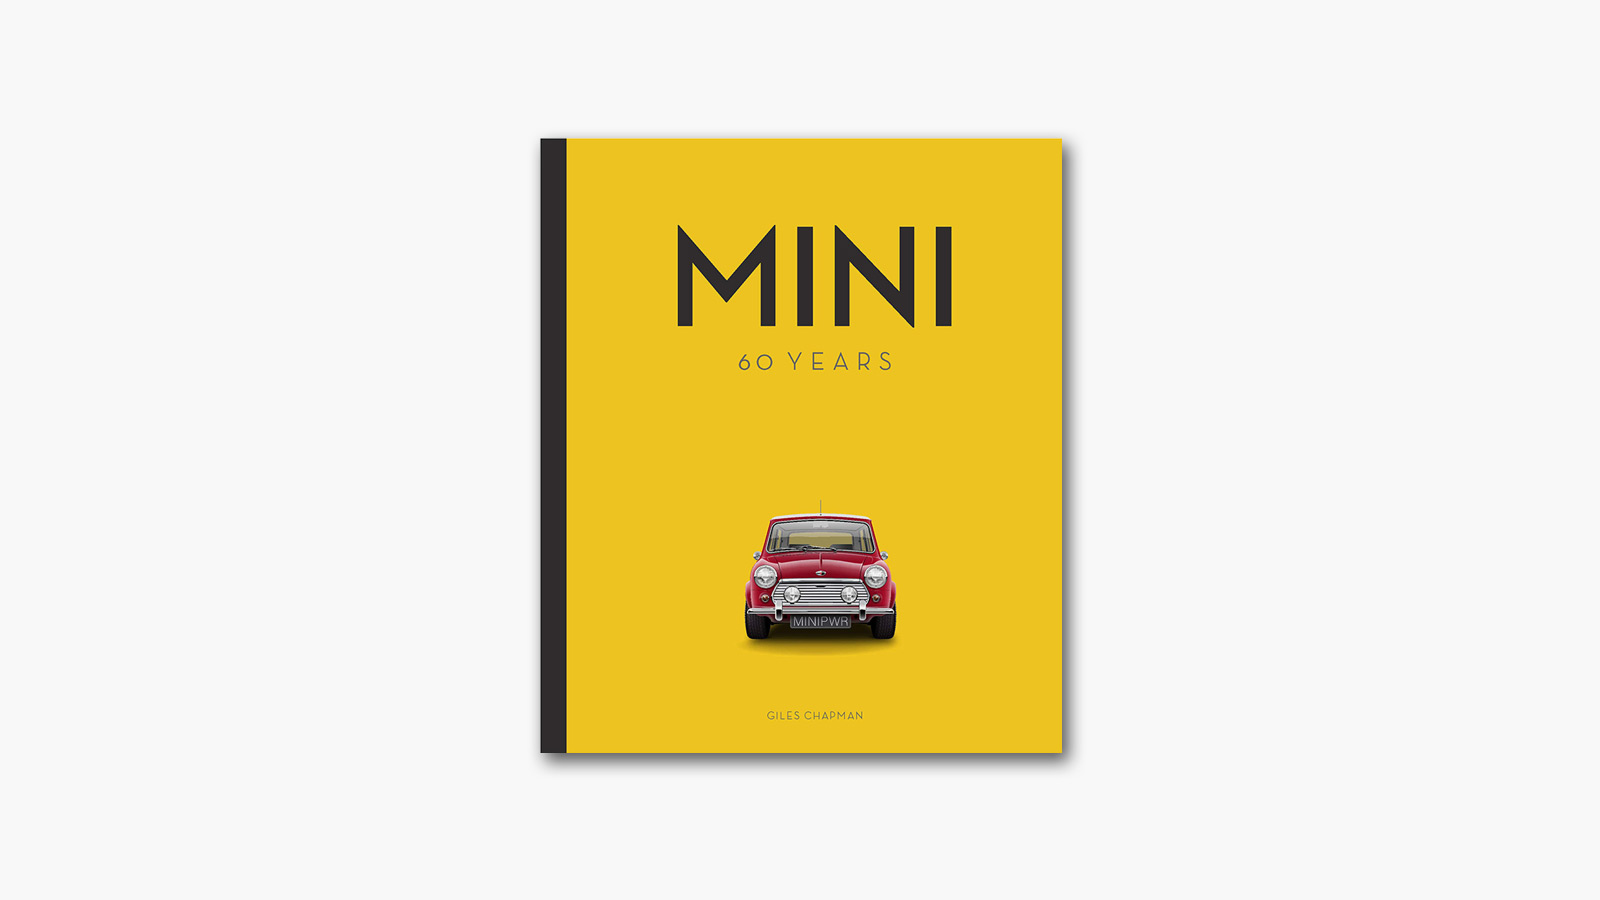 Mini: 60 Years' by Giles Chapman